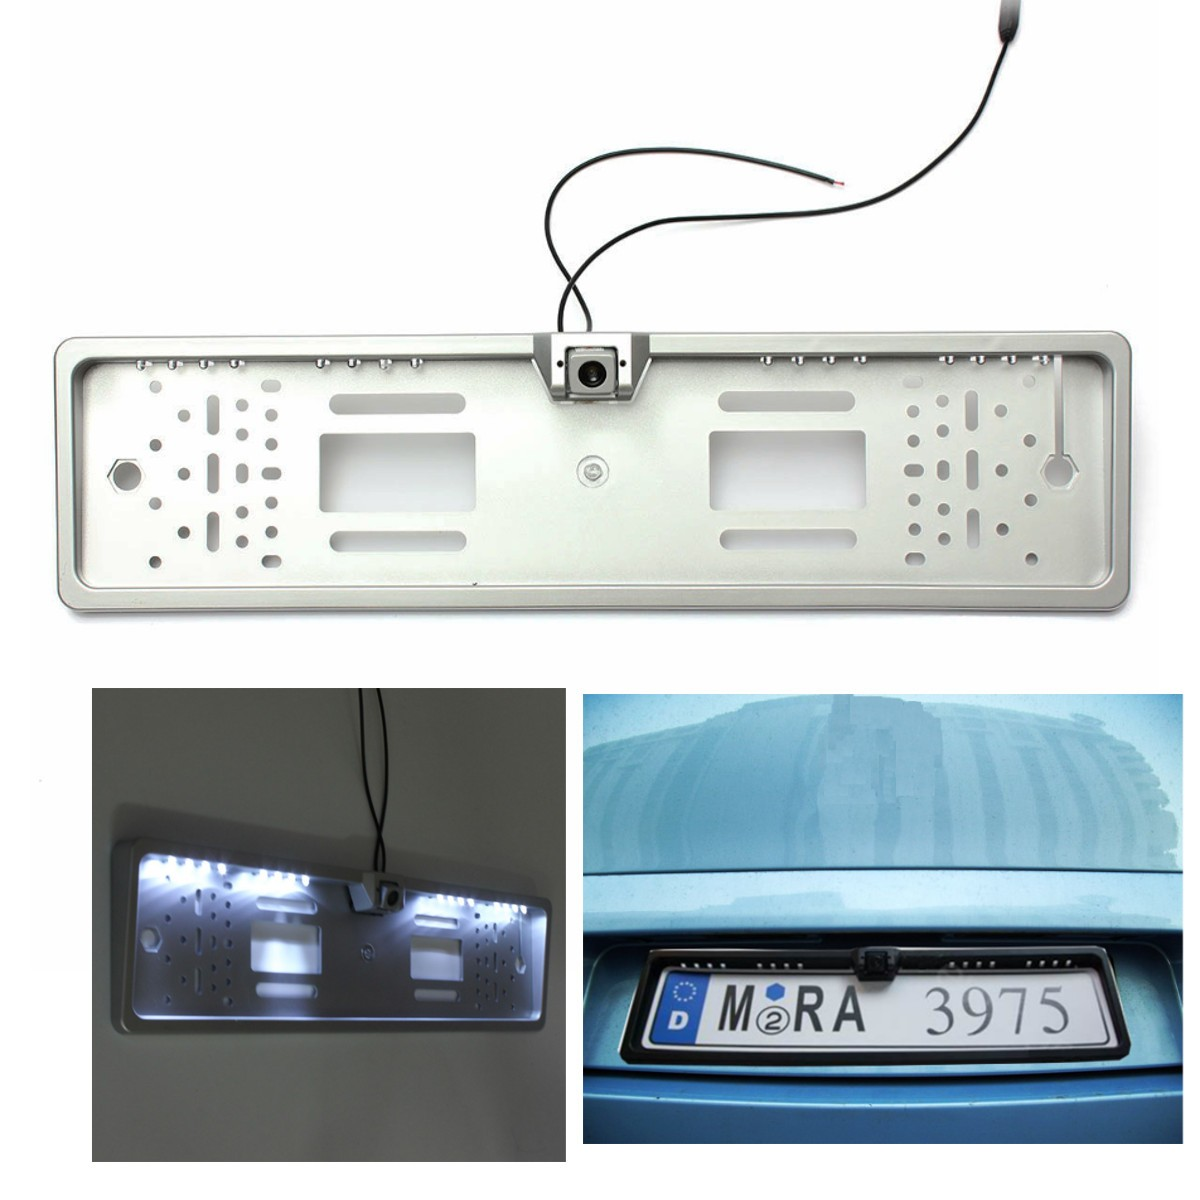 цена на Newest Car 16 LED Number Plate Frame Light Rear View Camera Backup Parking Reversing 170 degree wide viewing angle